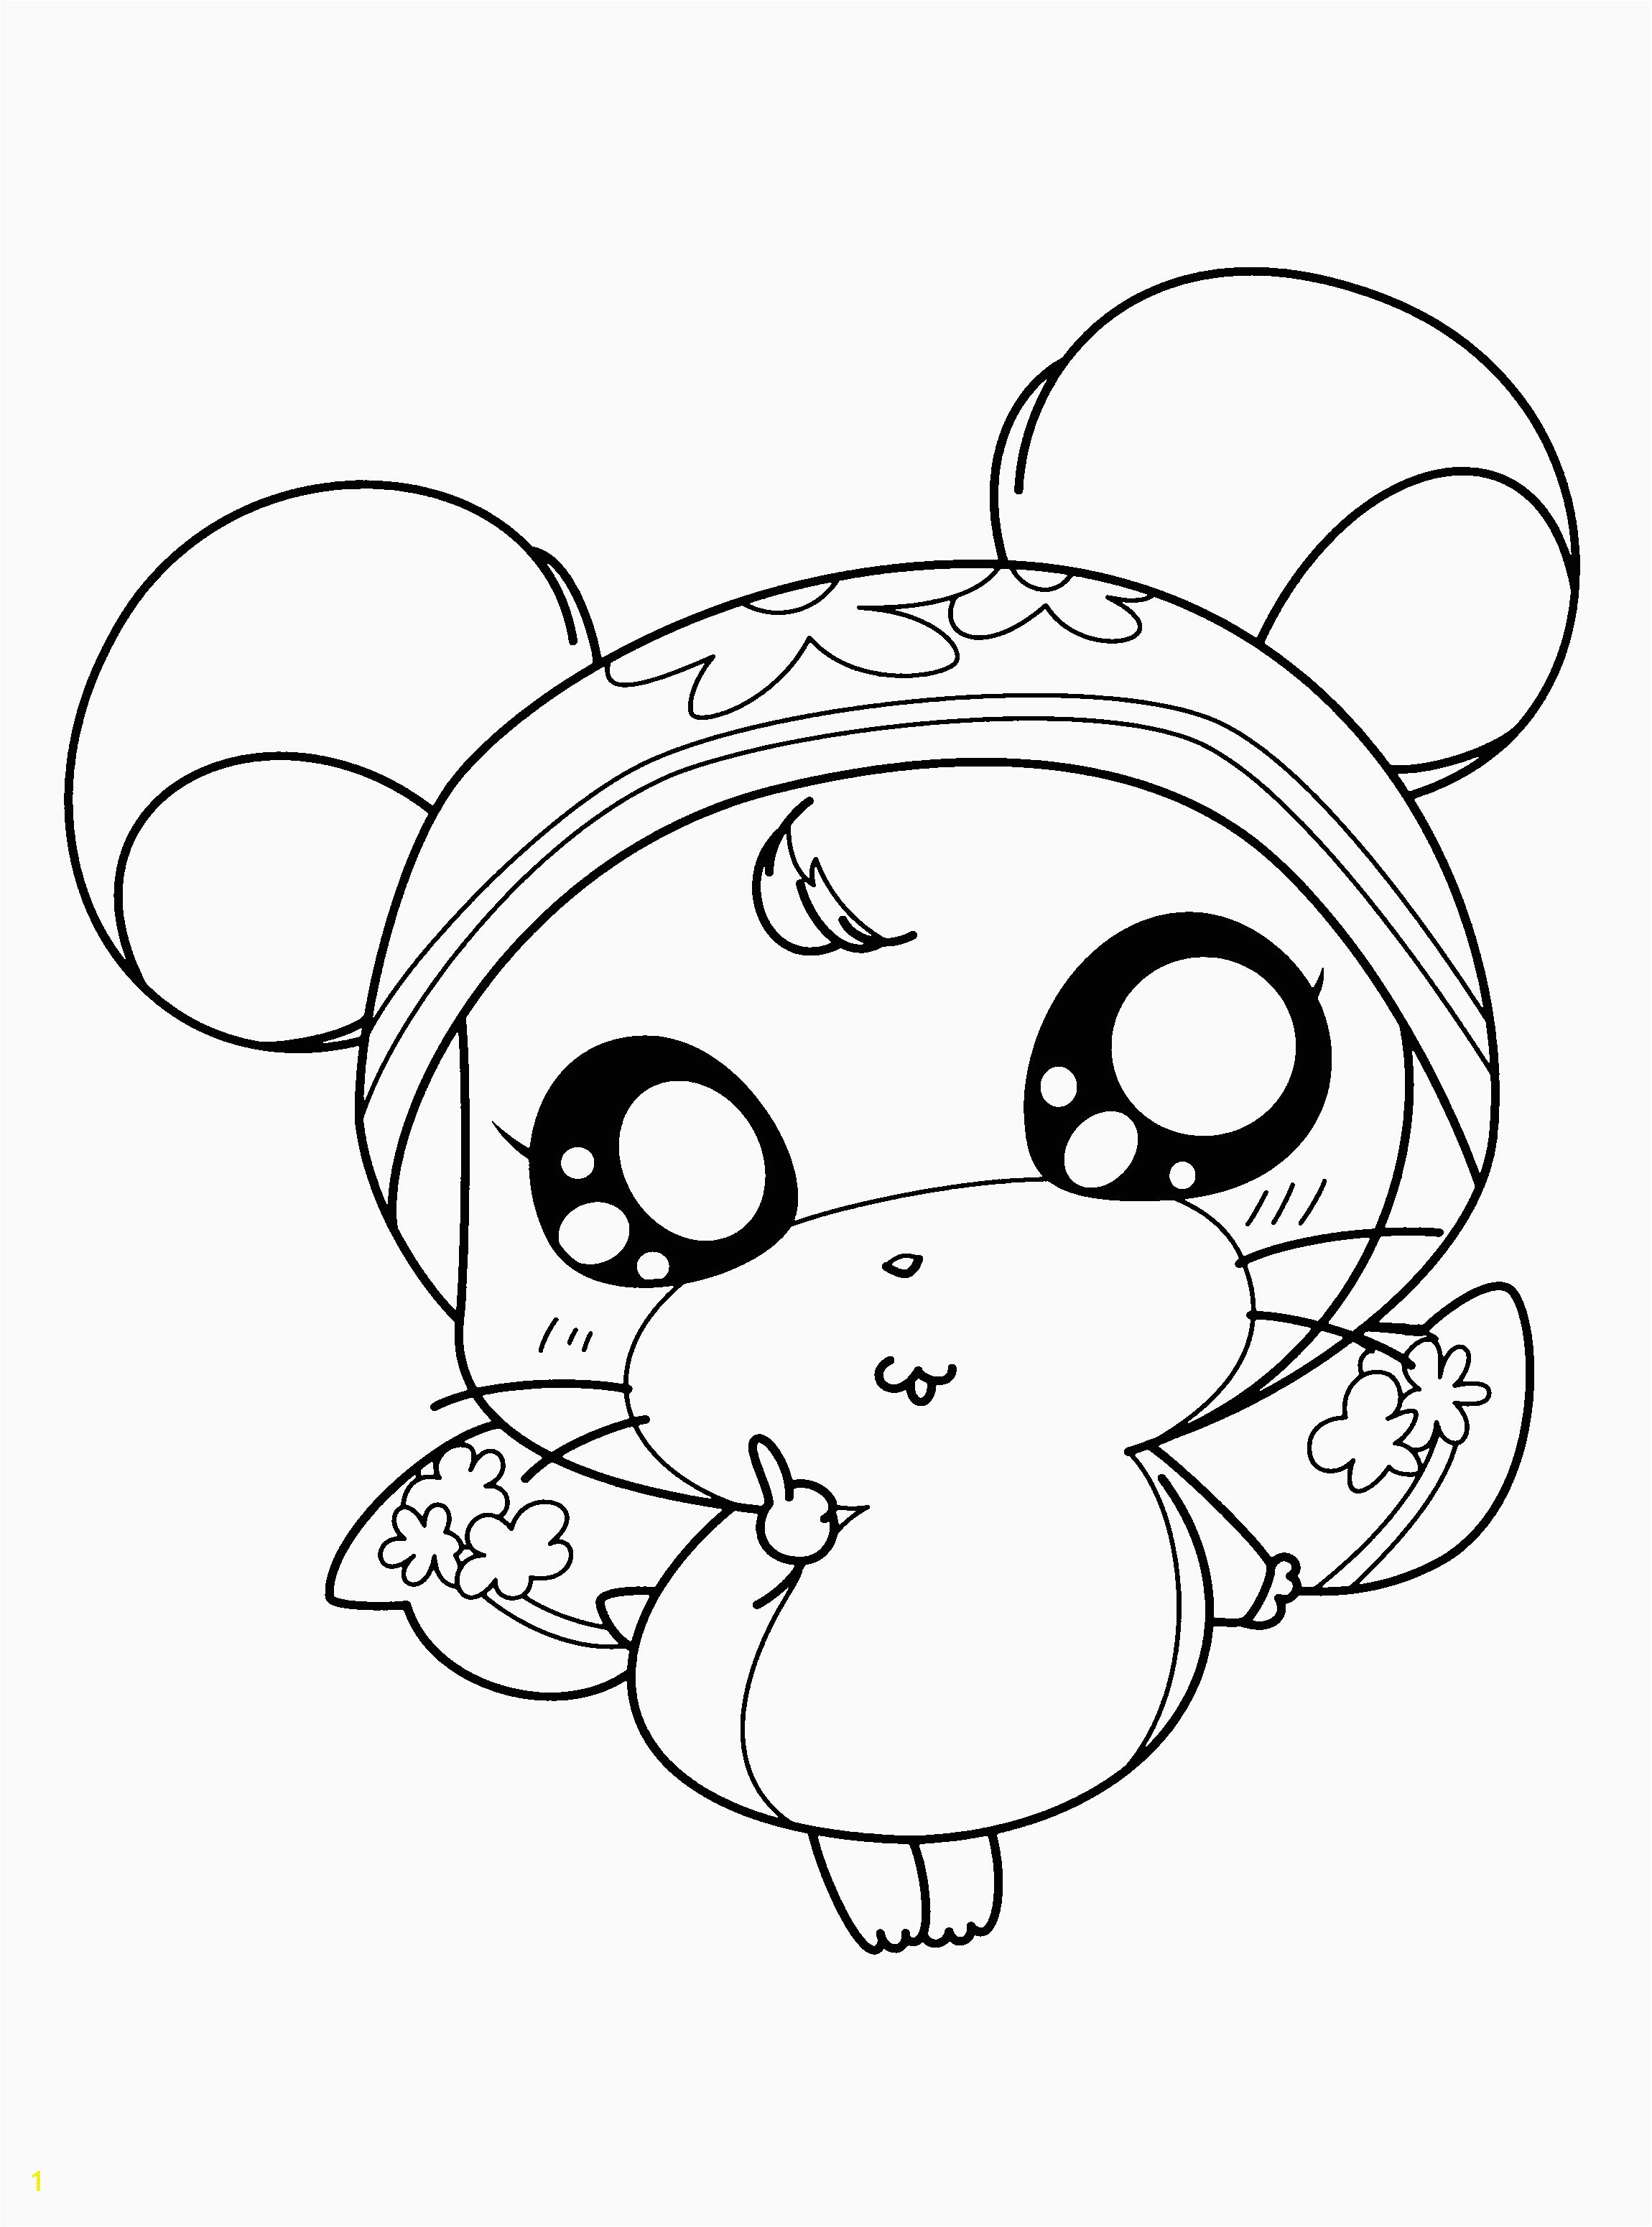 Coloring Pages Of Baby Chicks 15 Fresh Baby Chick Coloring Pages Gallery